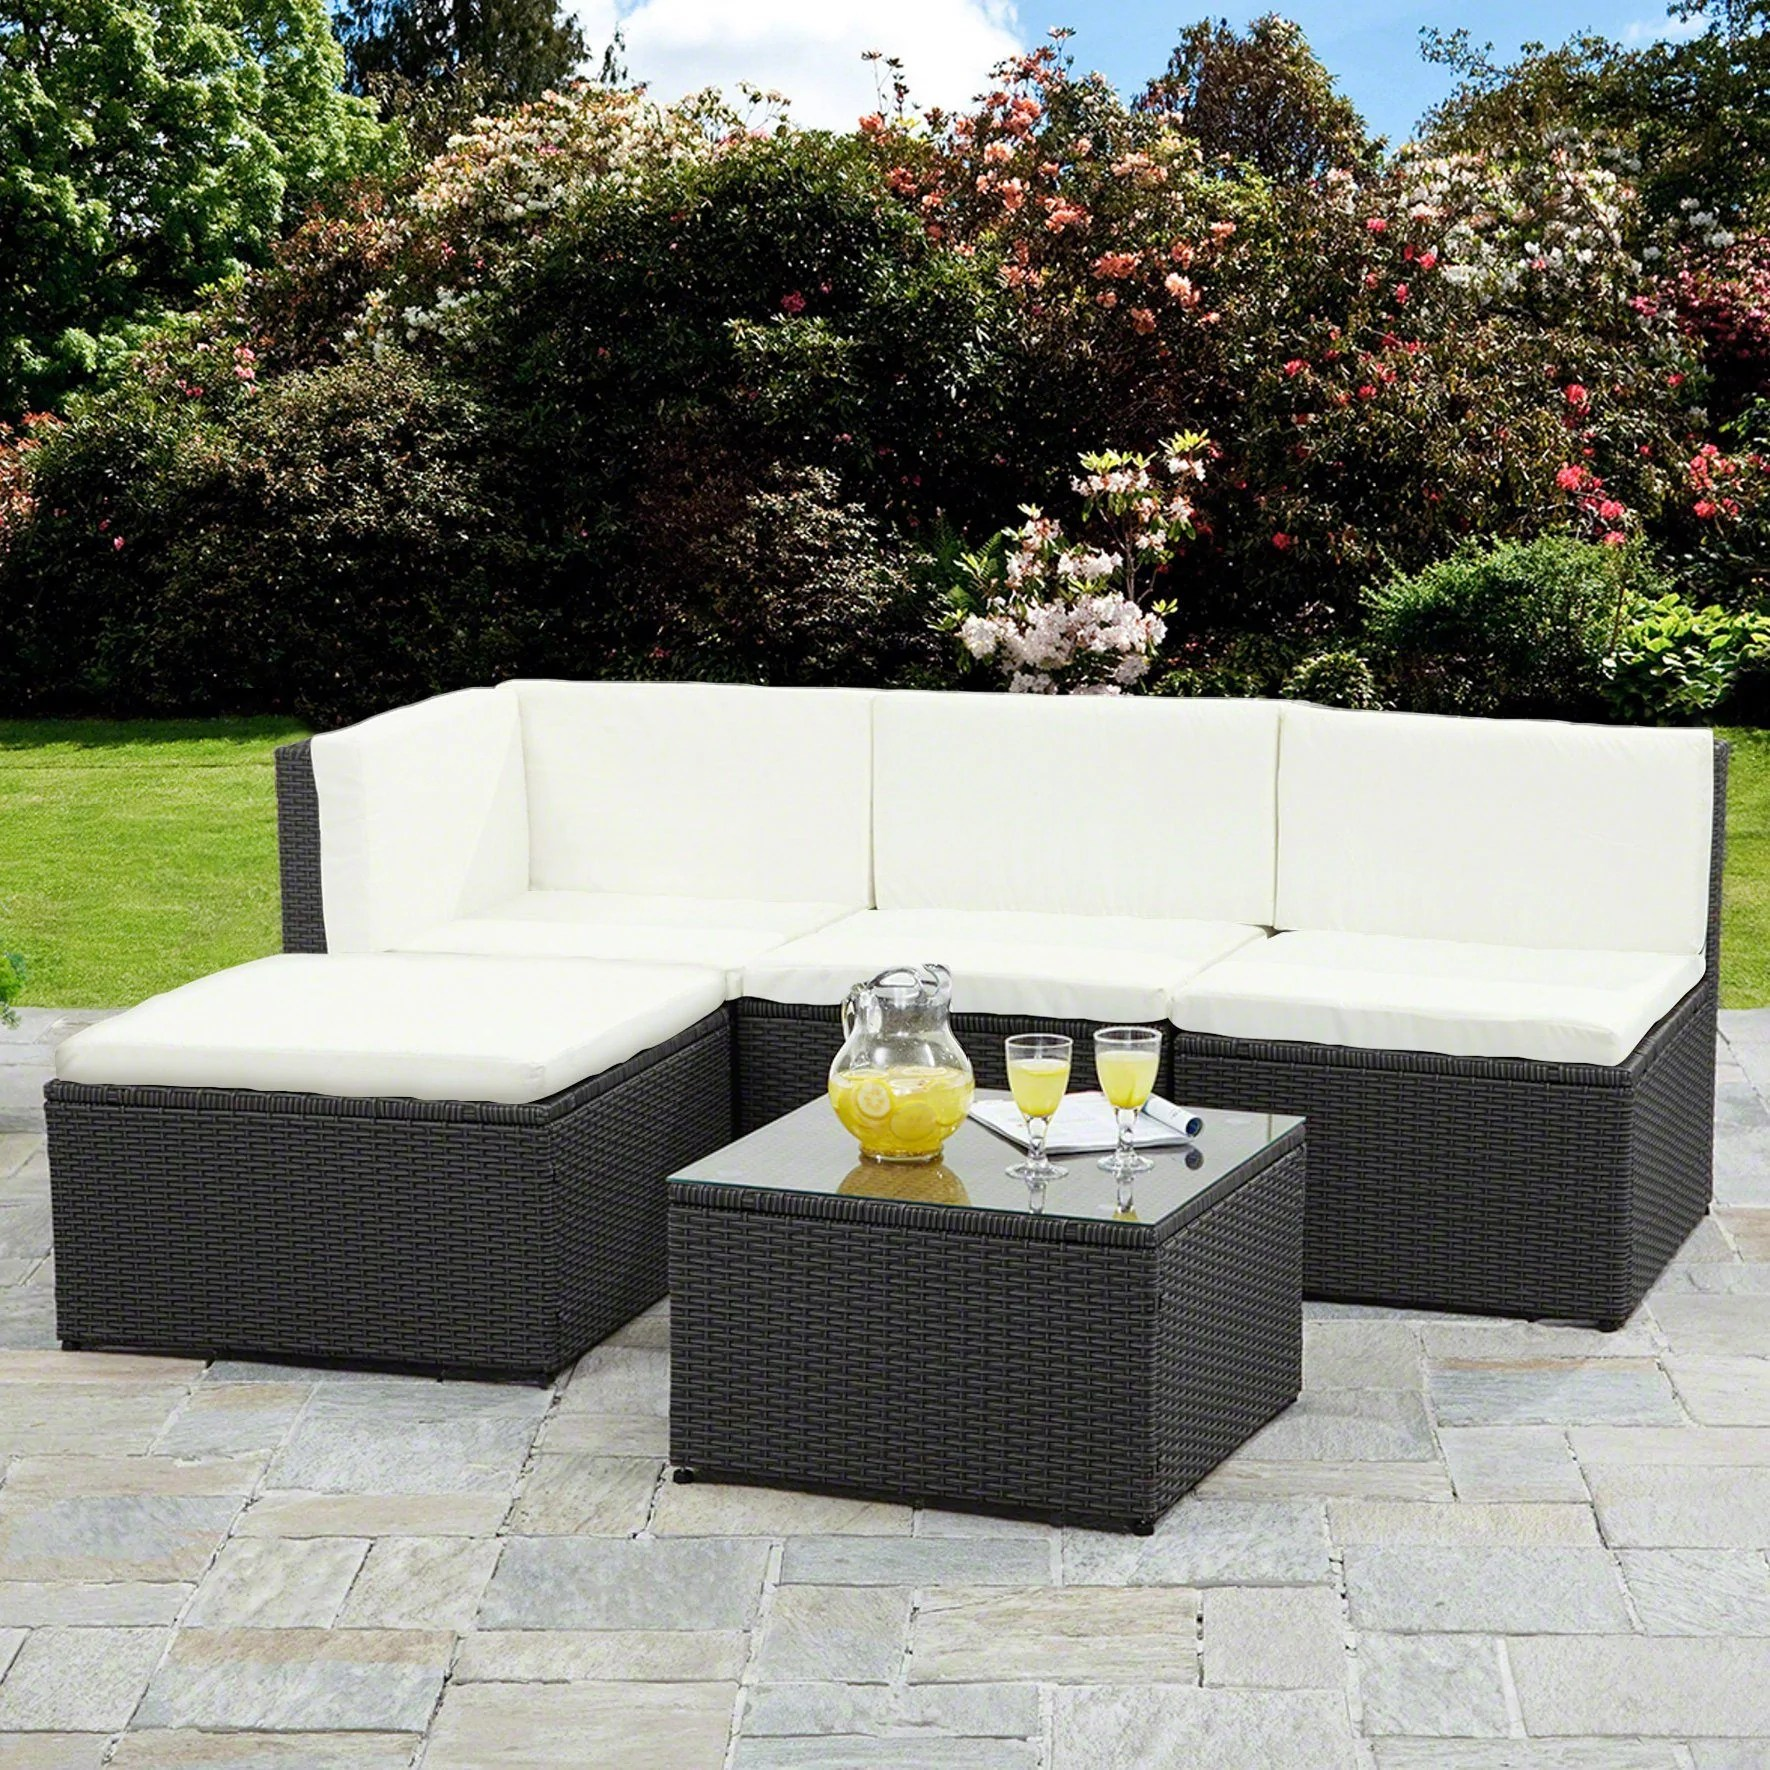 Rattan Corner Sofa Reviews Corner Sofa Rattan Garden Furniture Set Black Laura James